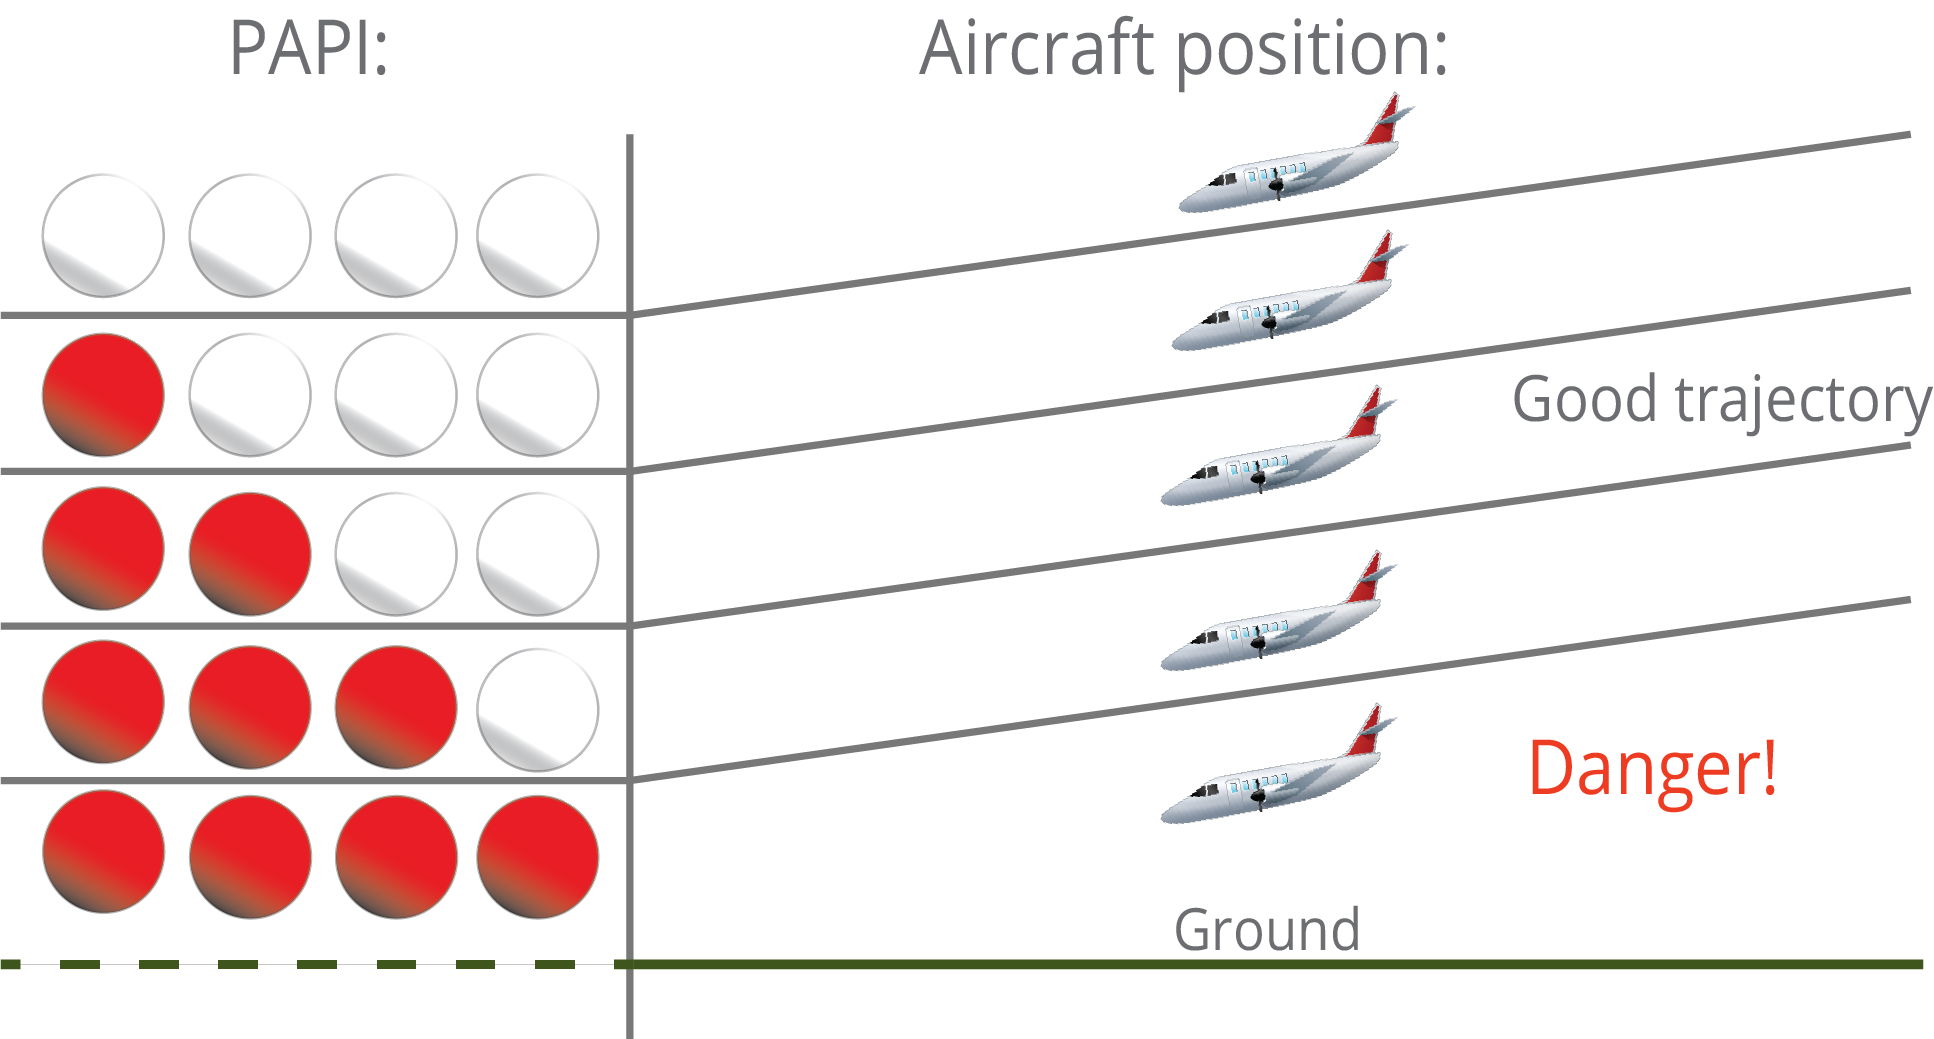 PAPI thresholds and aircraft position